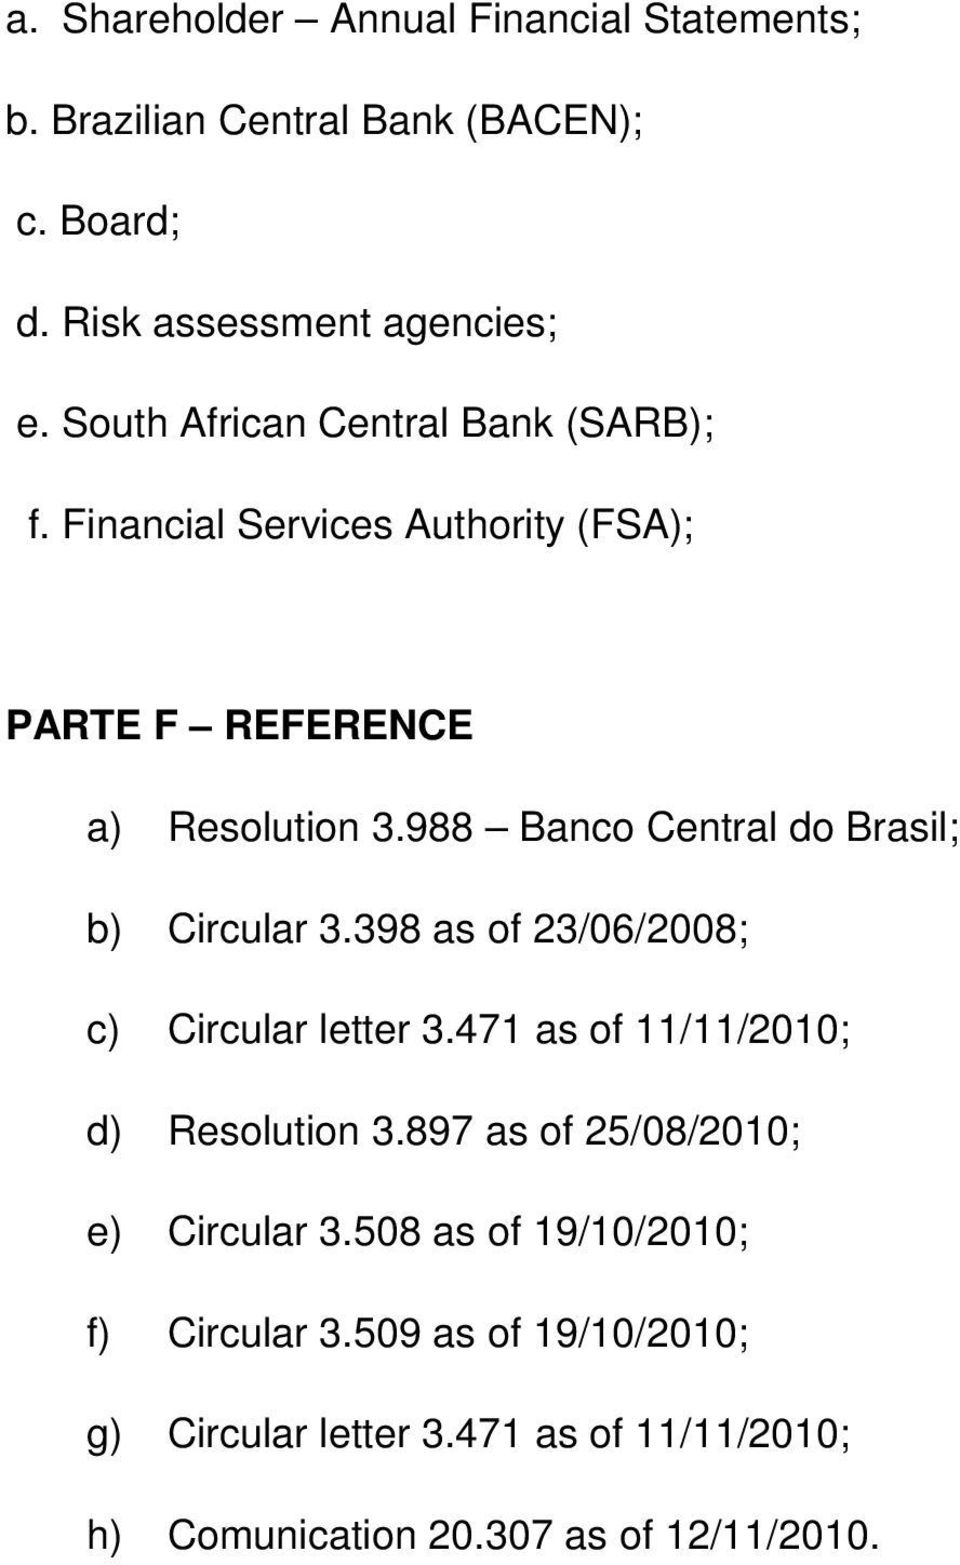 988 Banco Central do Brasil; b) Circular 3.398 as of 23/06/2008; c) Circular letter 3.471 as of 11/11/2010; d) Resolution 3.